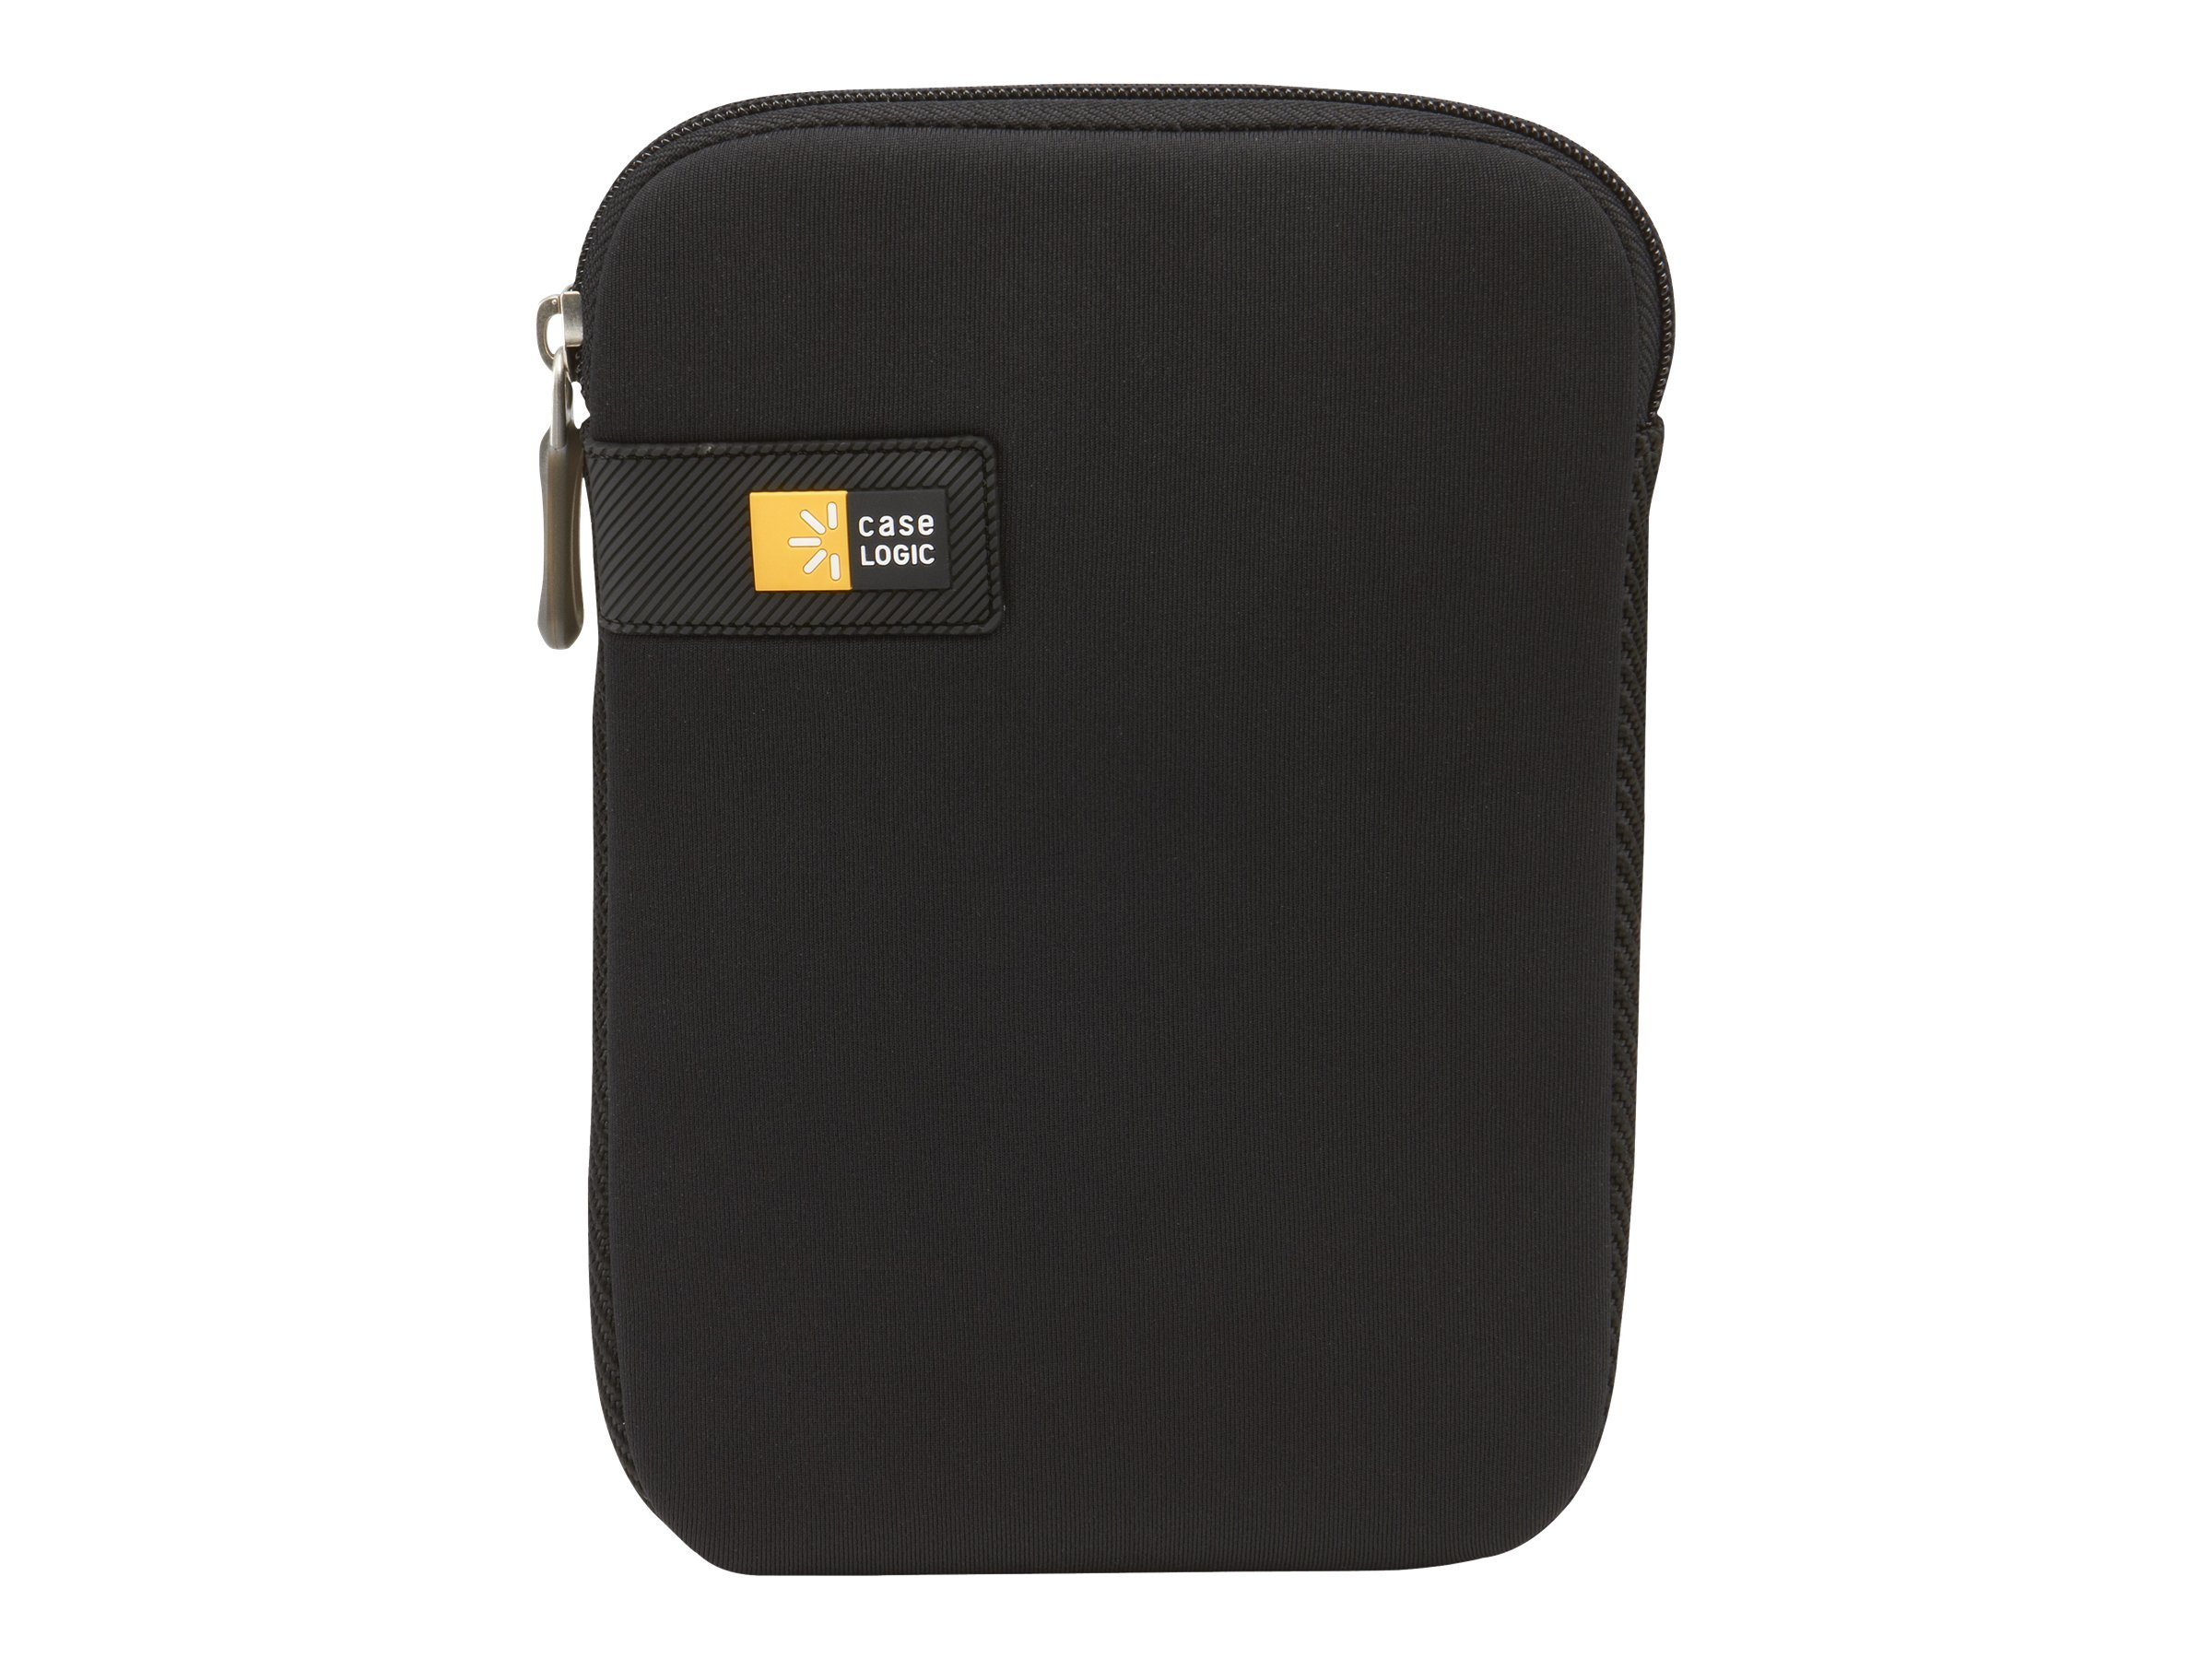 Case Logic 7 Tablet Sleeve, Black, LAPST-107BLACK, 12623176, Protective & Dust Covers